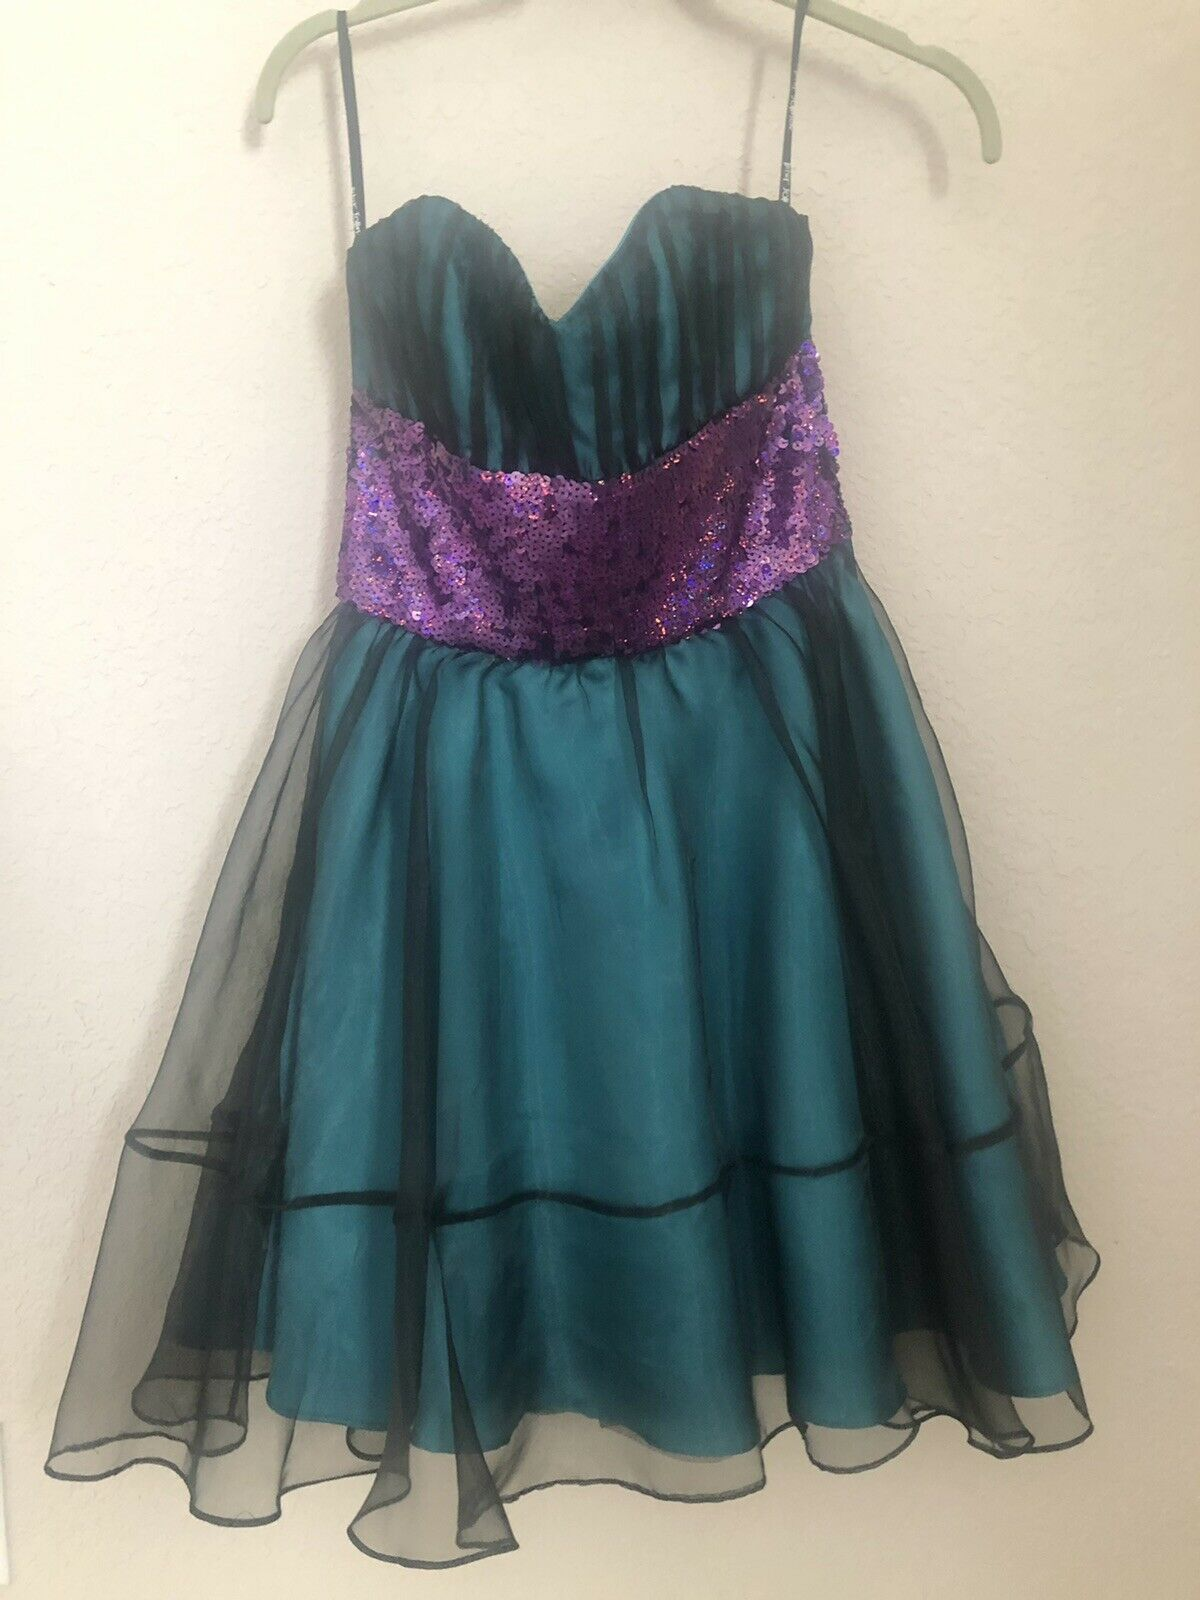 Betsey Johnson Evening Sequin Teal & Purple Strapless Dress Size 2 Formal Prom